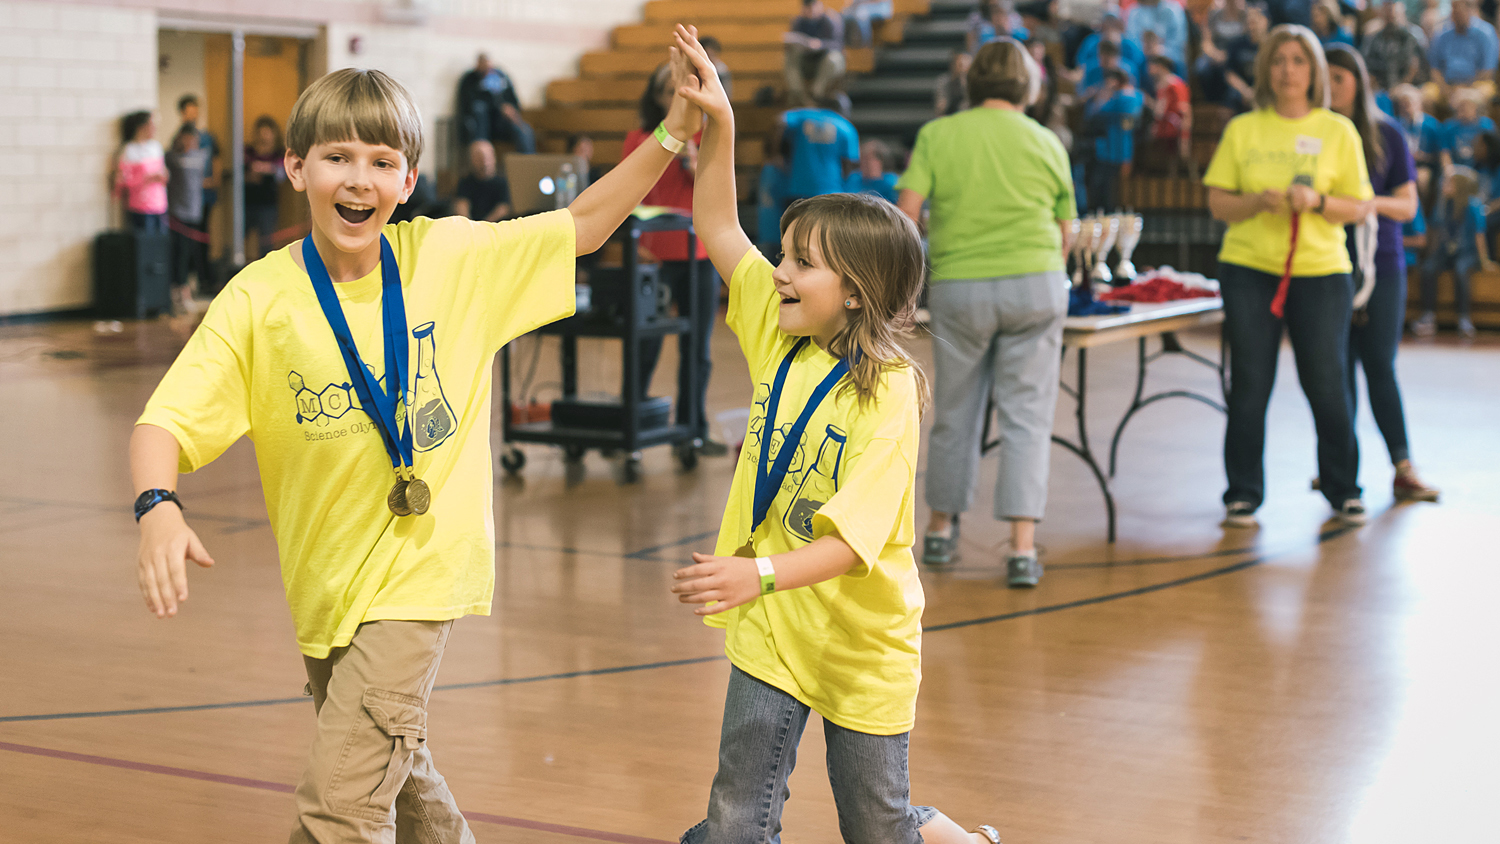 Two Science Olympiad participants high-five